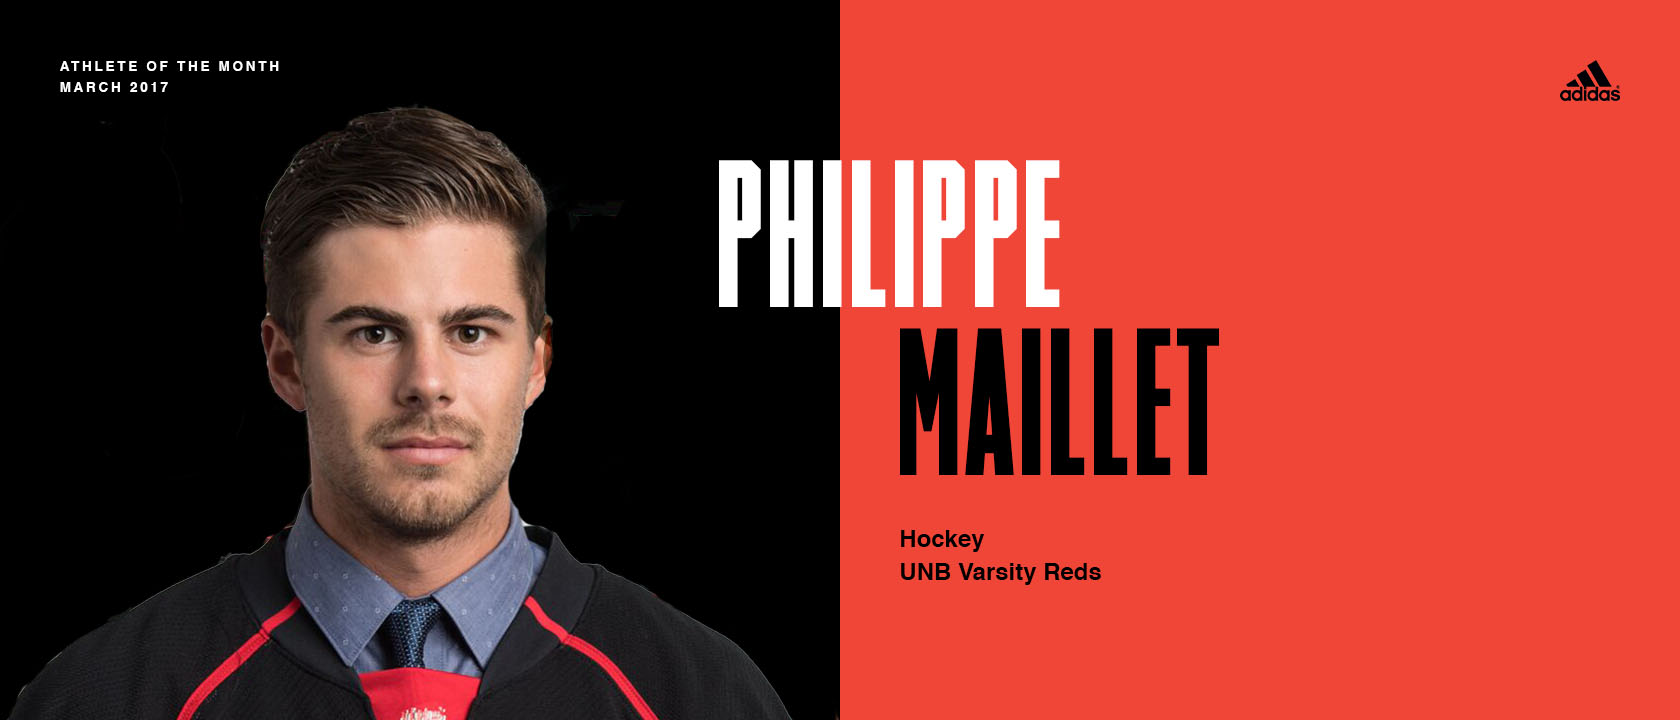 2017 U SPORTS Champions Series:  March Athlete of the Month Maillet's own March Madness ends with UNB's second straight national championship